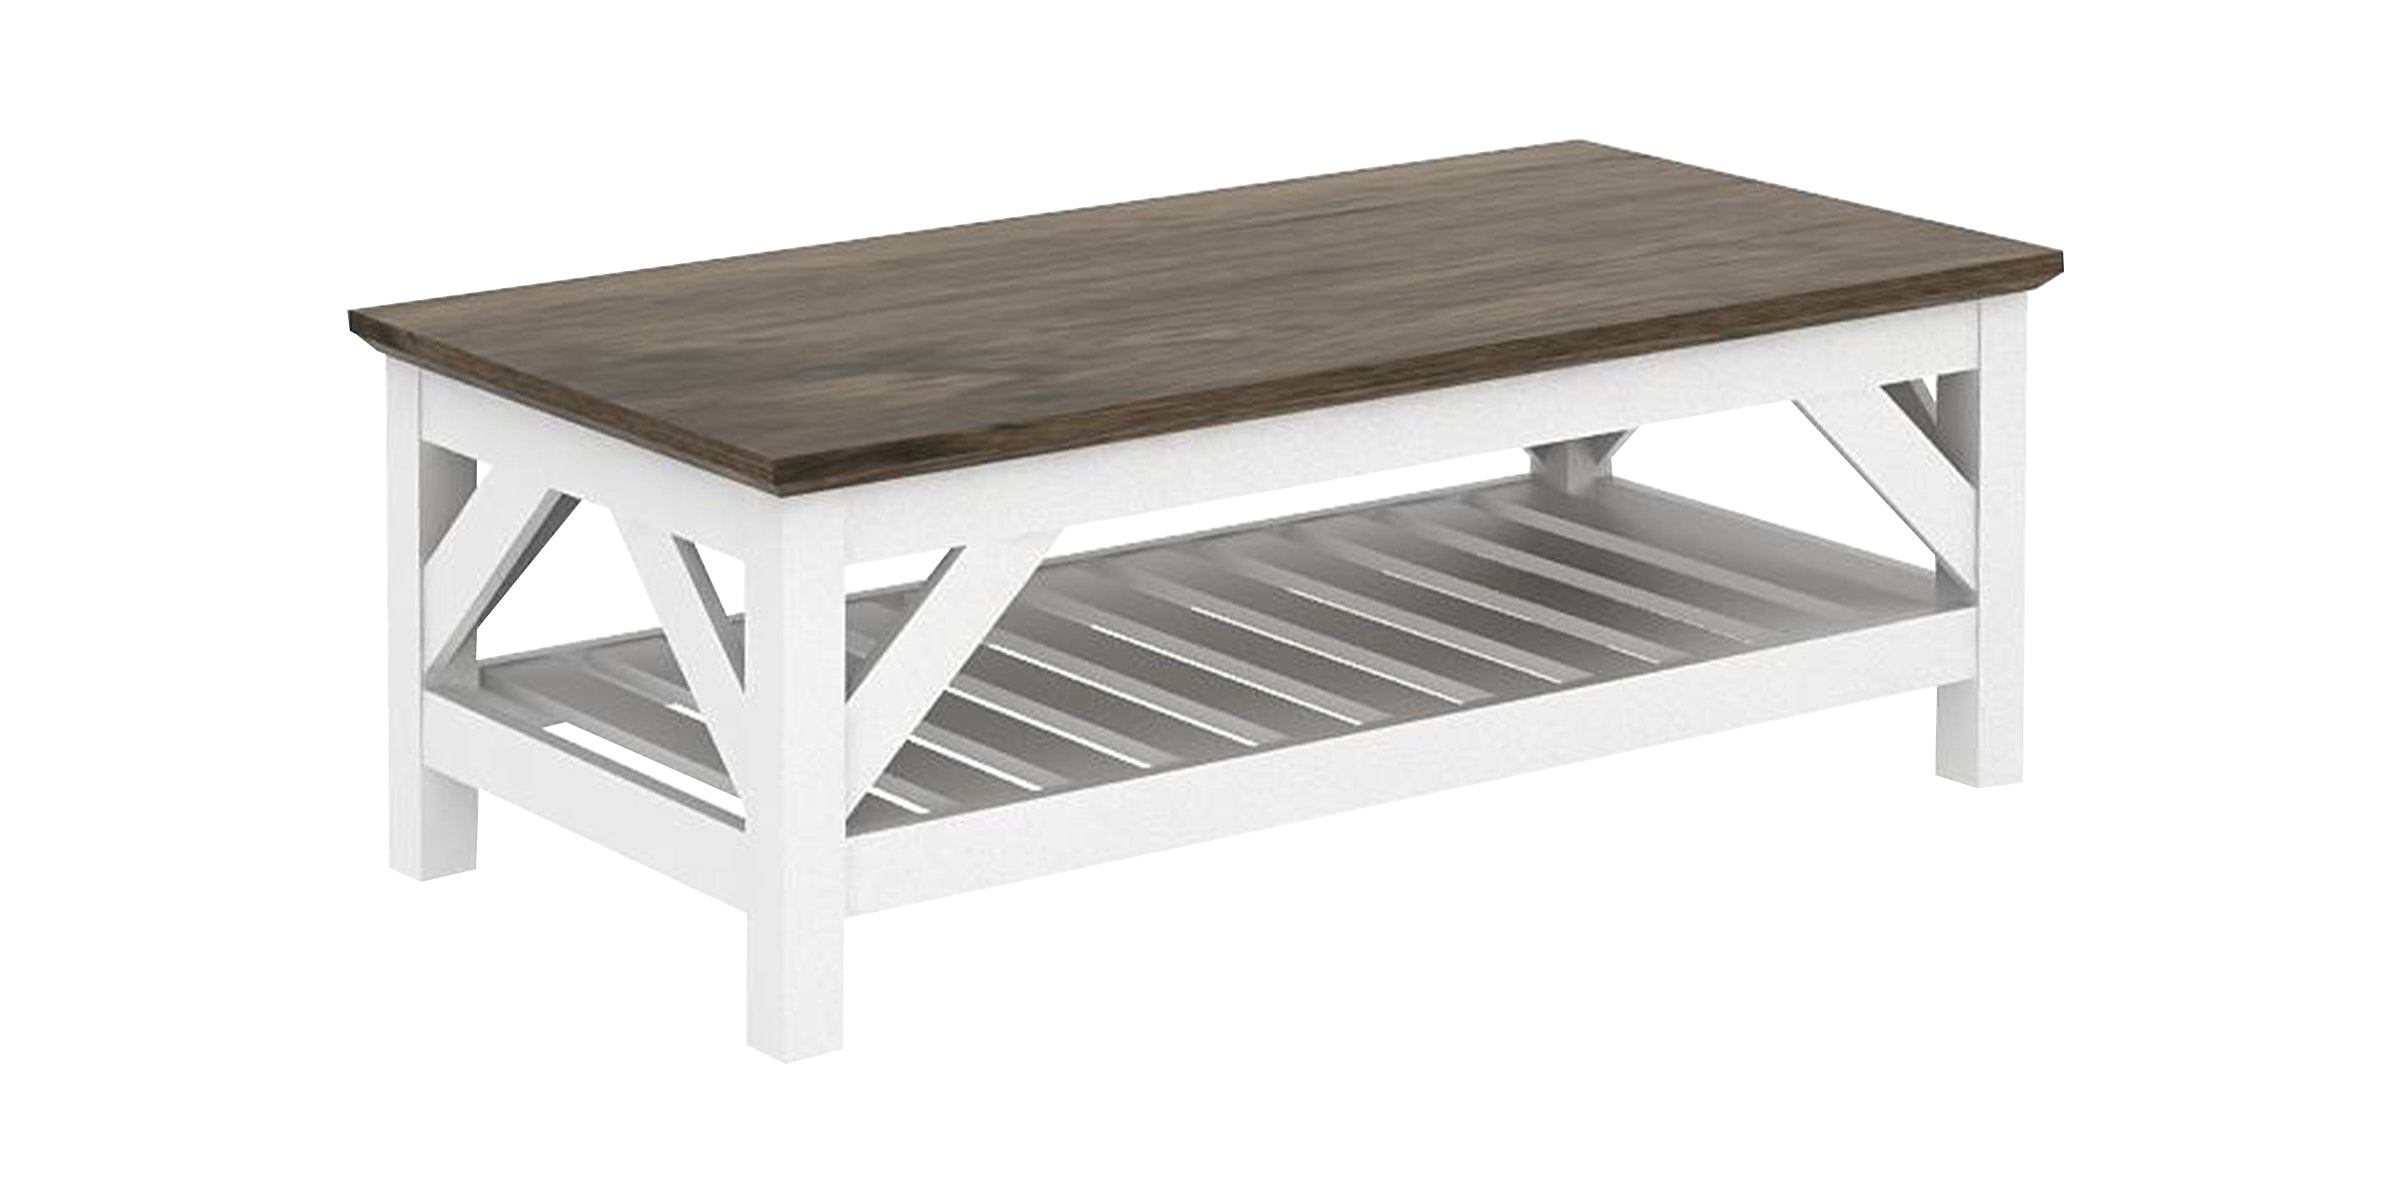 JYSK Coffee Table Helen 120X60X45Cm Oak White